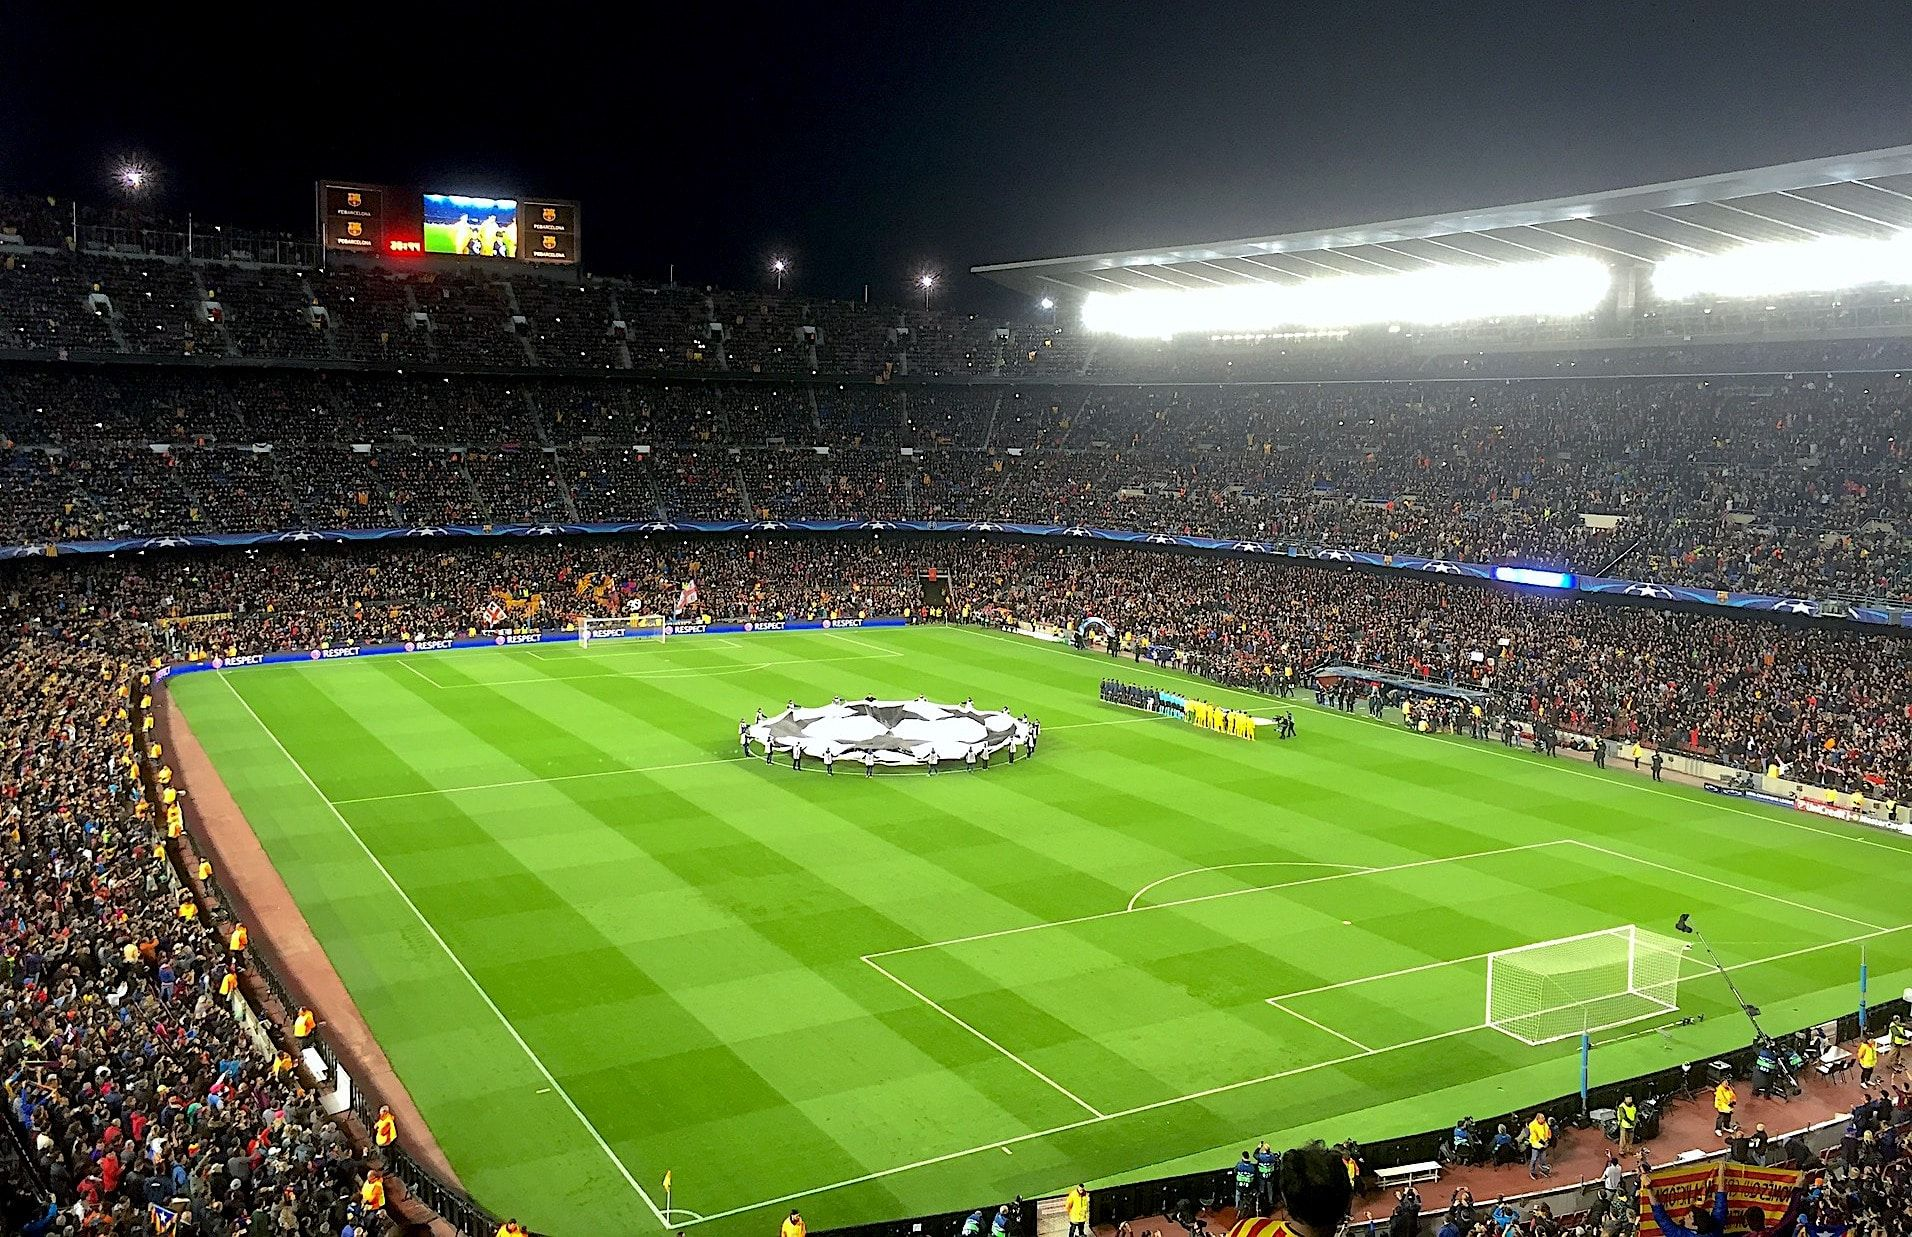 The Champions League in Barcelona